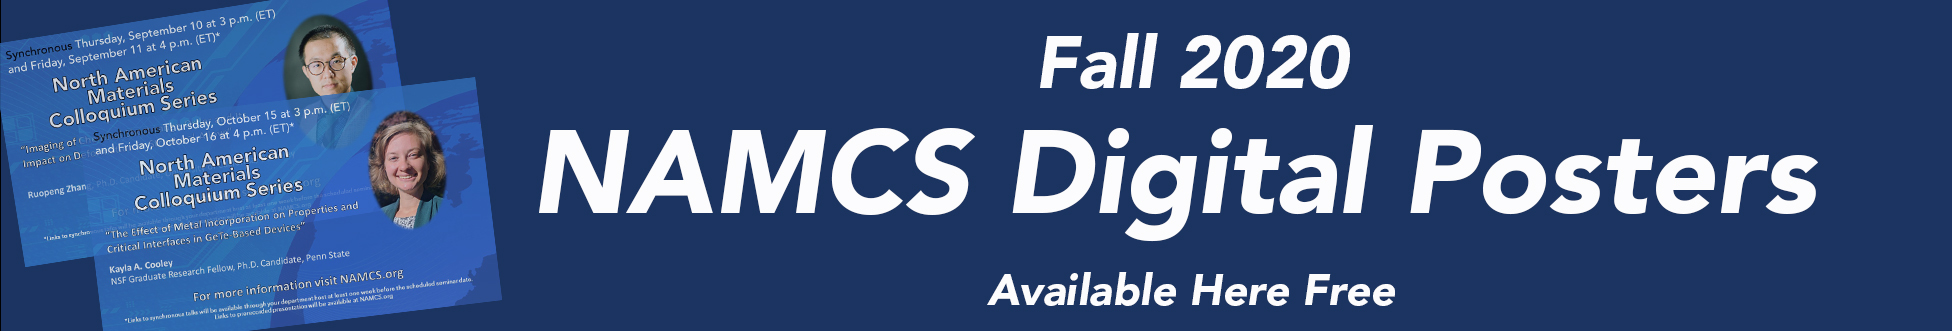 NAMCS Digital Posters